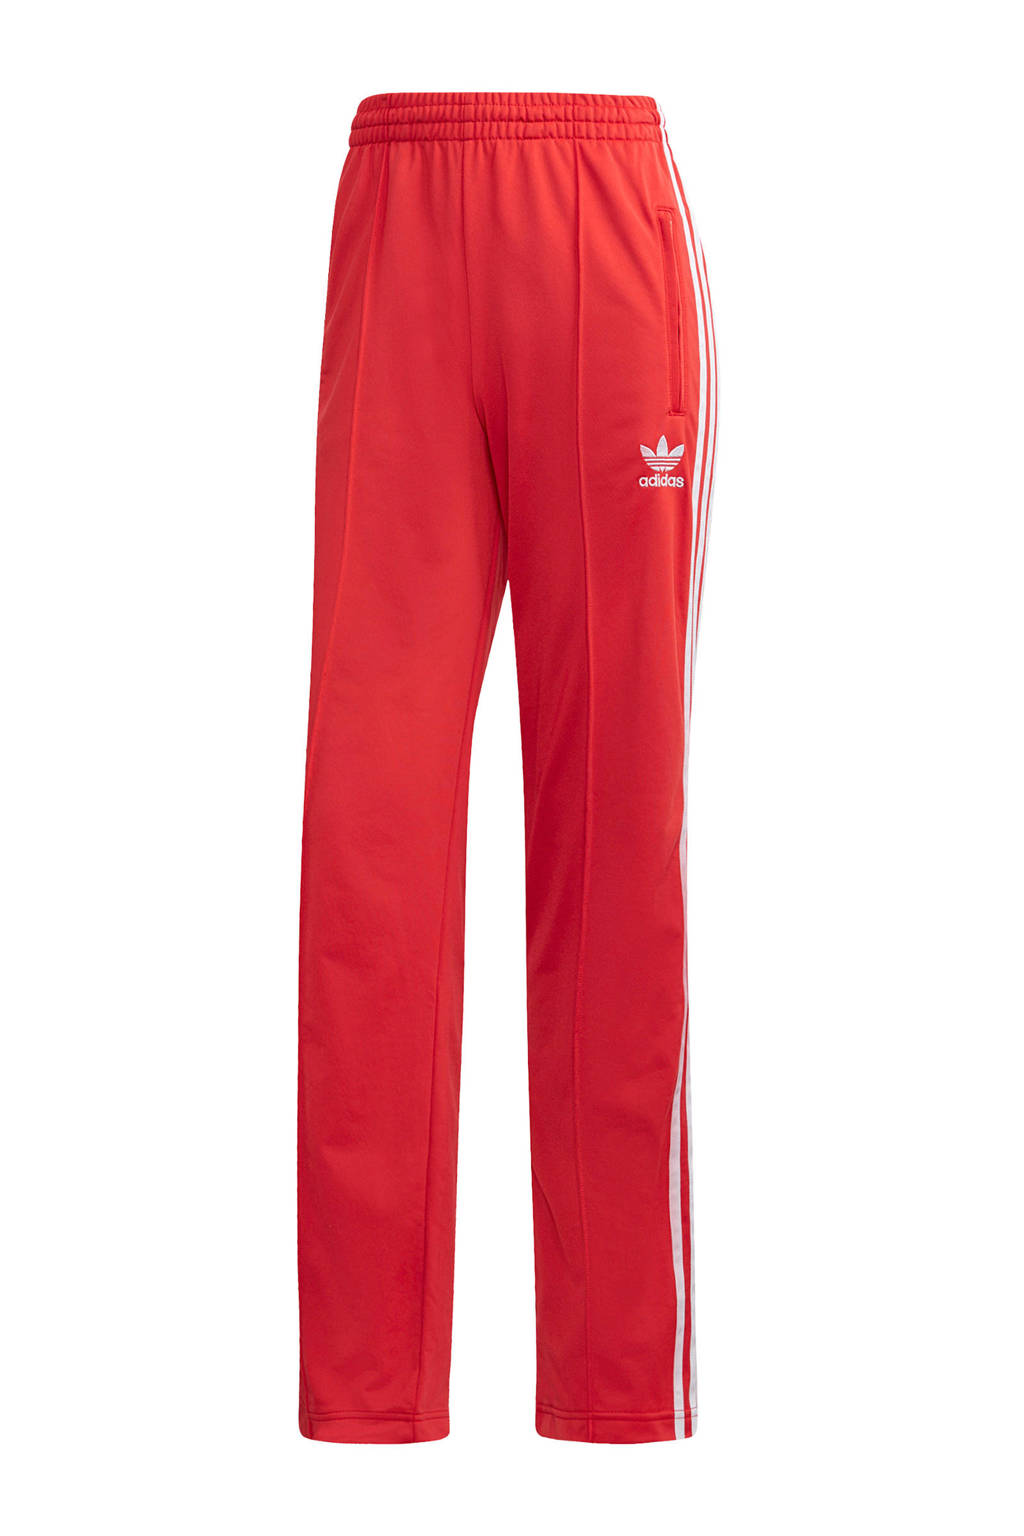 adidas Originals Adicolor trainingsbroek rood, Rood